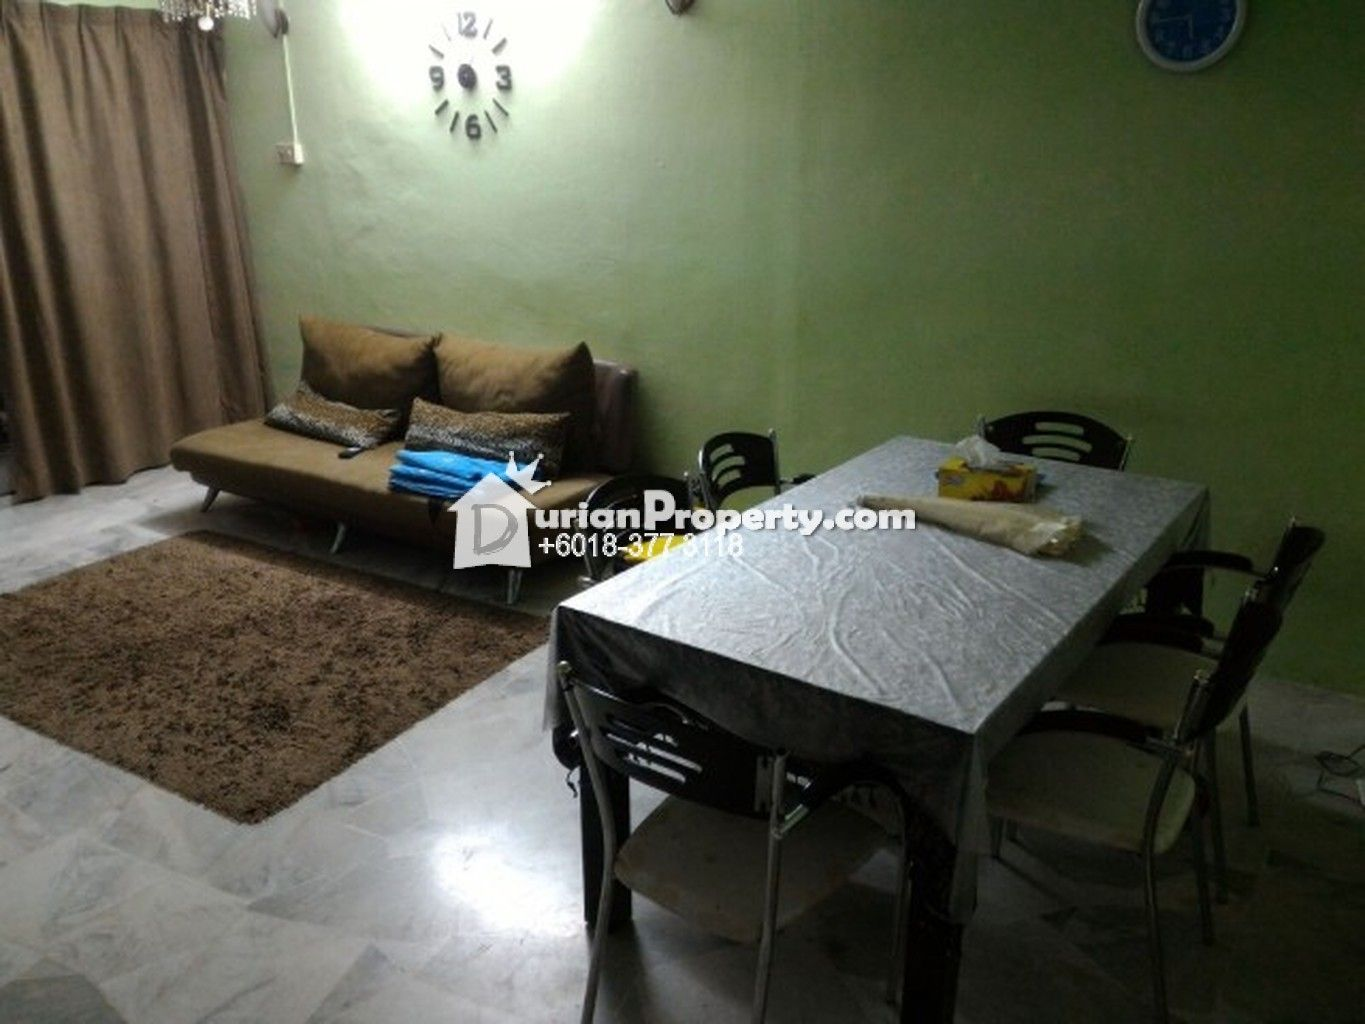 Property for Sale at Taman Sri Gombak Property For Sale in